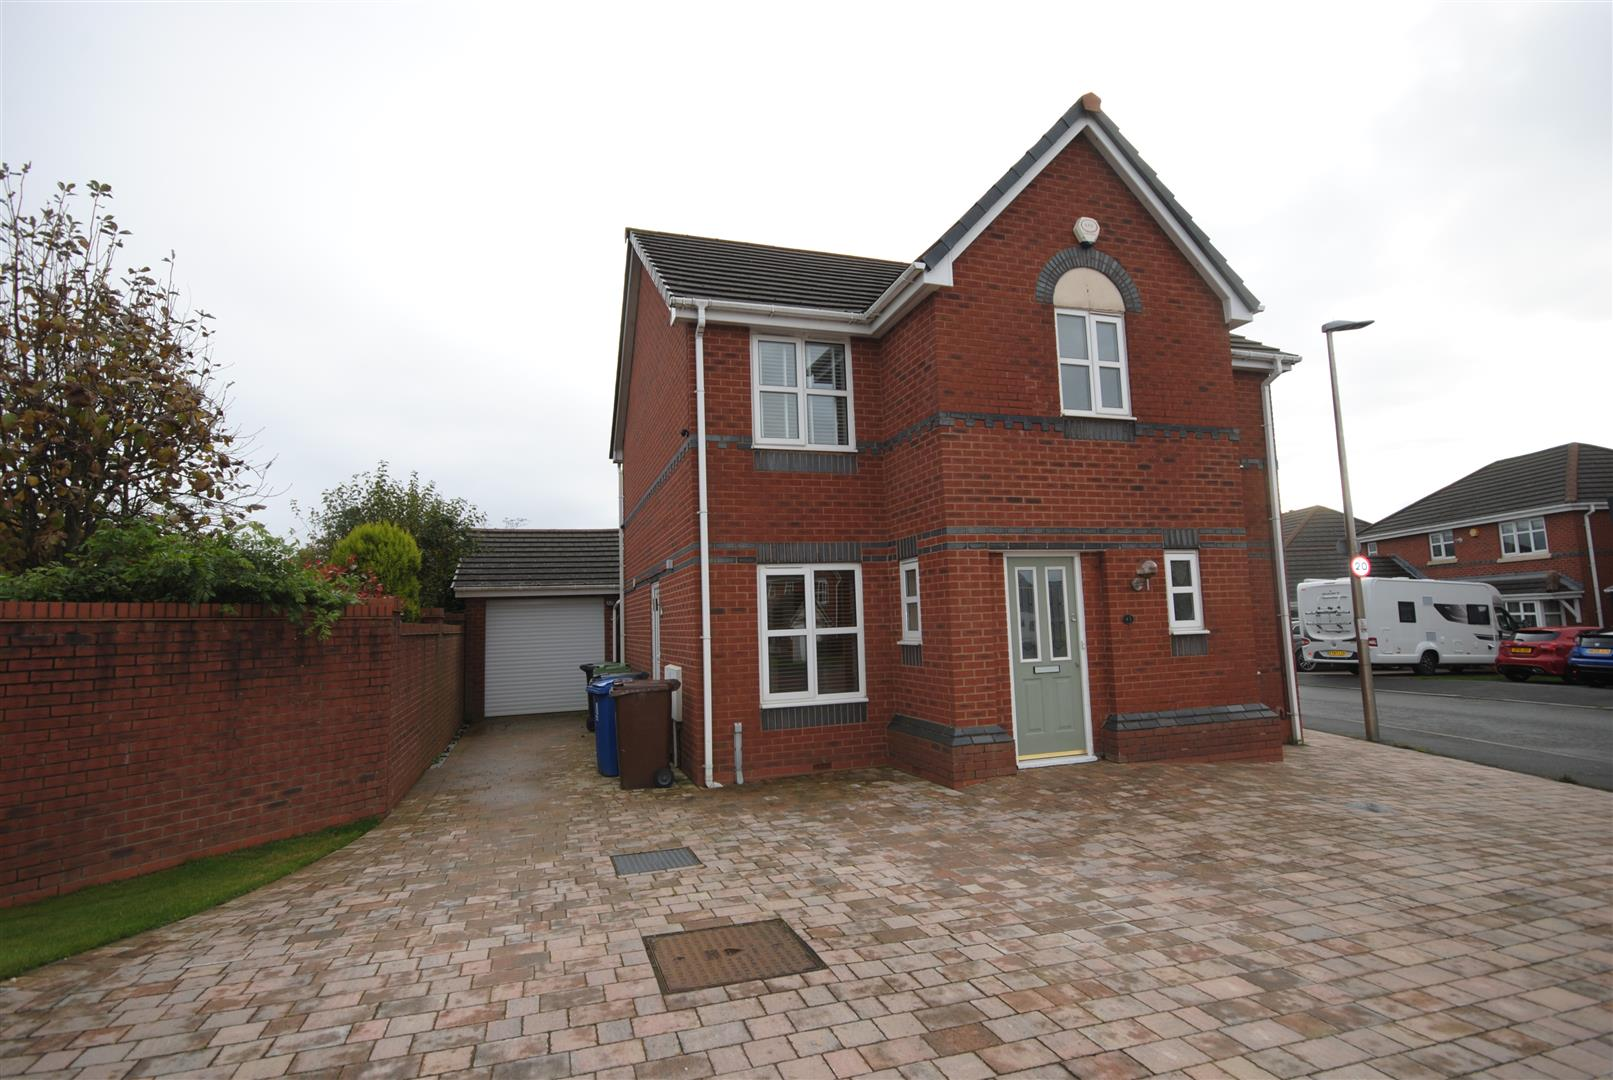 4 Bedrooms Detached House for sale in Naburn Drive, Orrell, Wigan